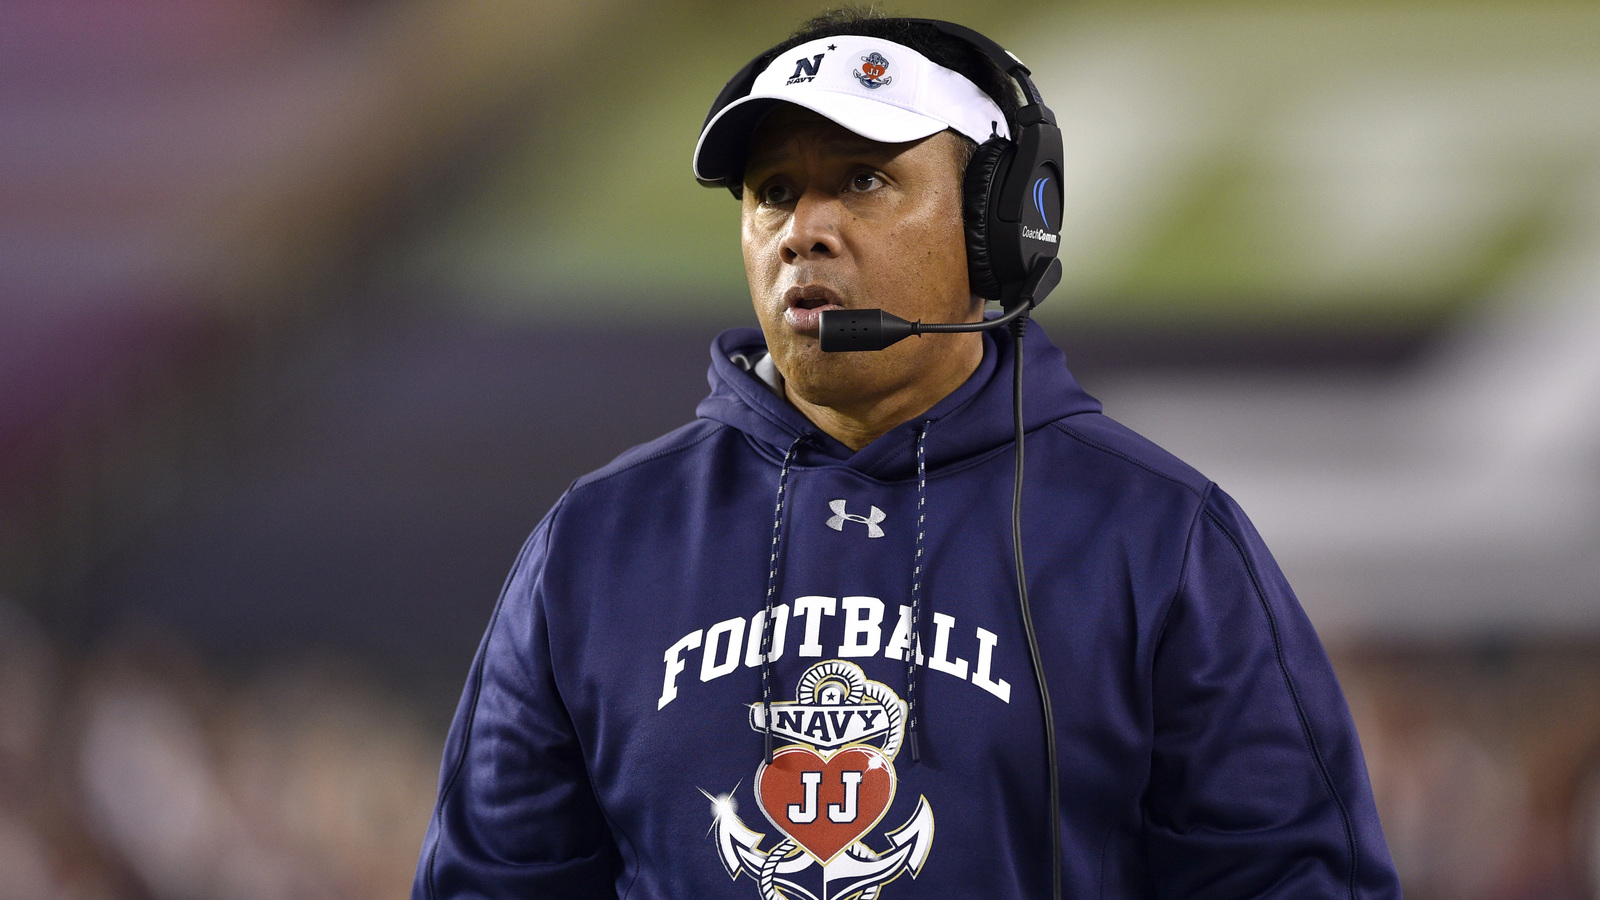 Navy head coach Ken Niumatalolo reportedly in running for Arizona job